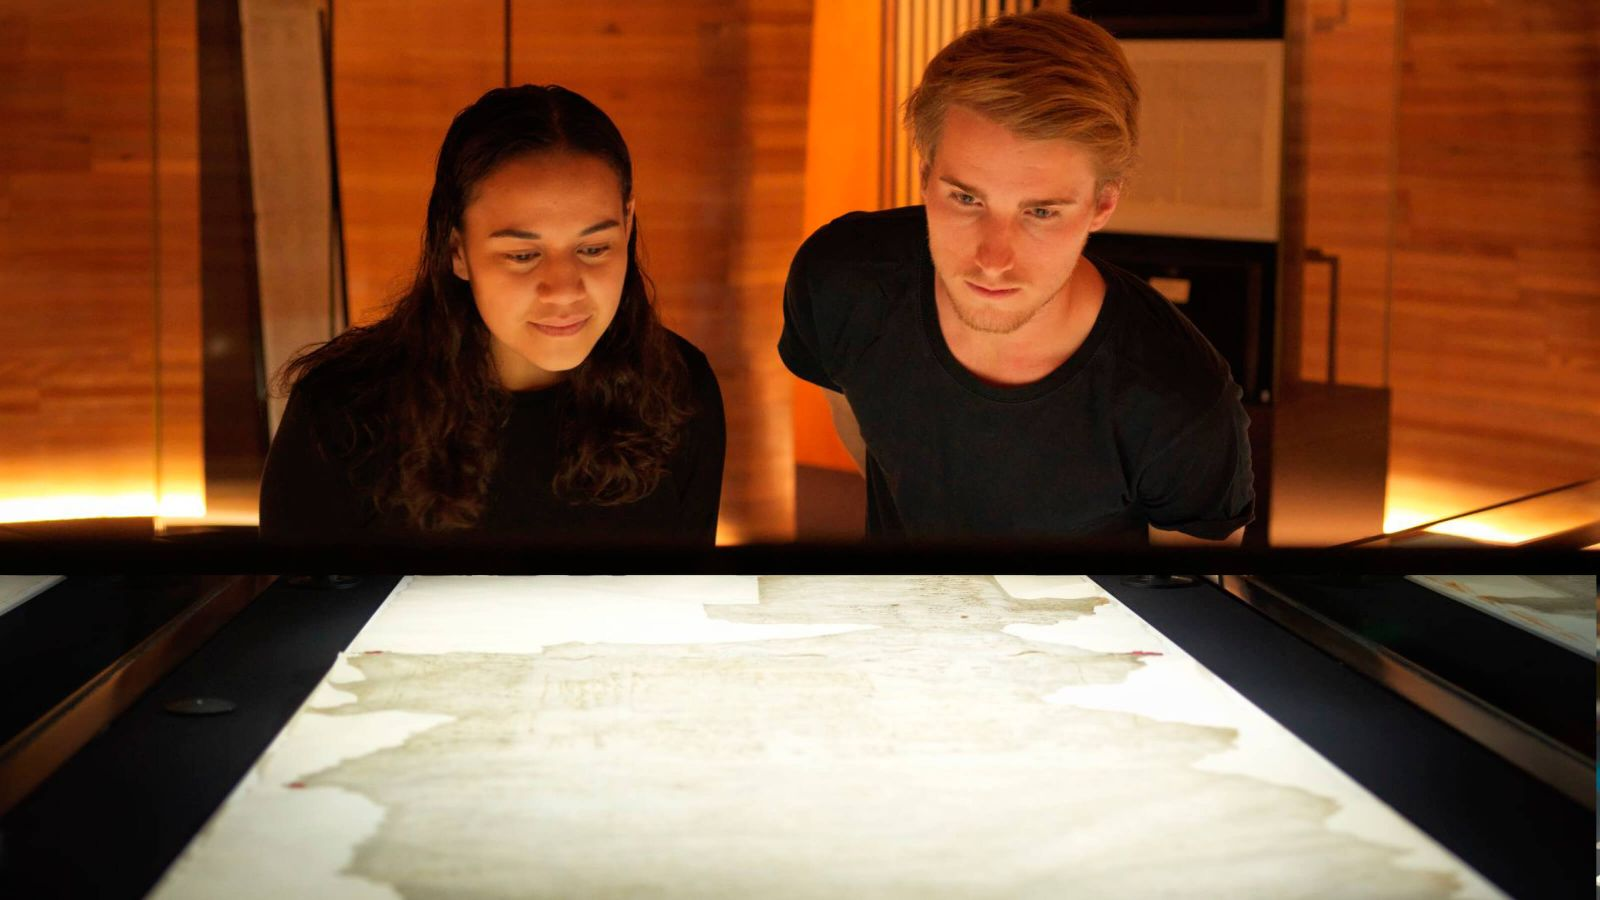 Two students look down over a backlight surface the illuminates an old map.